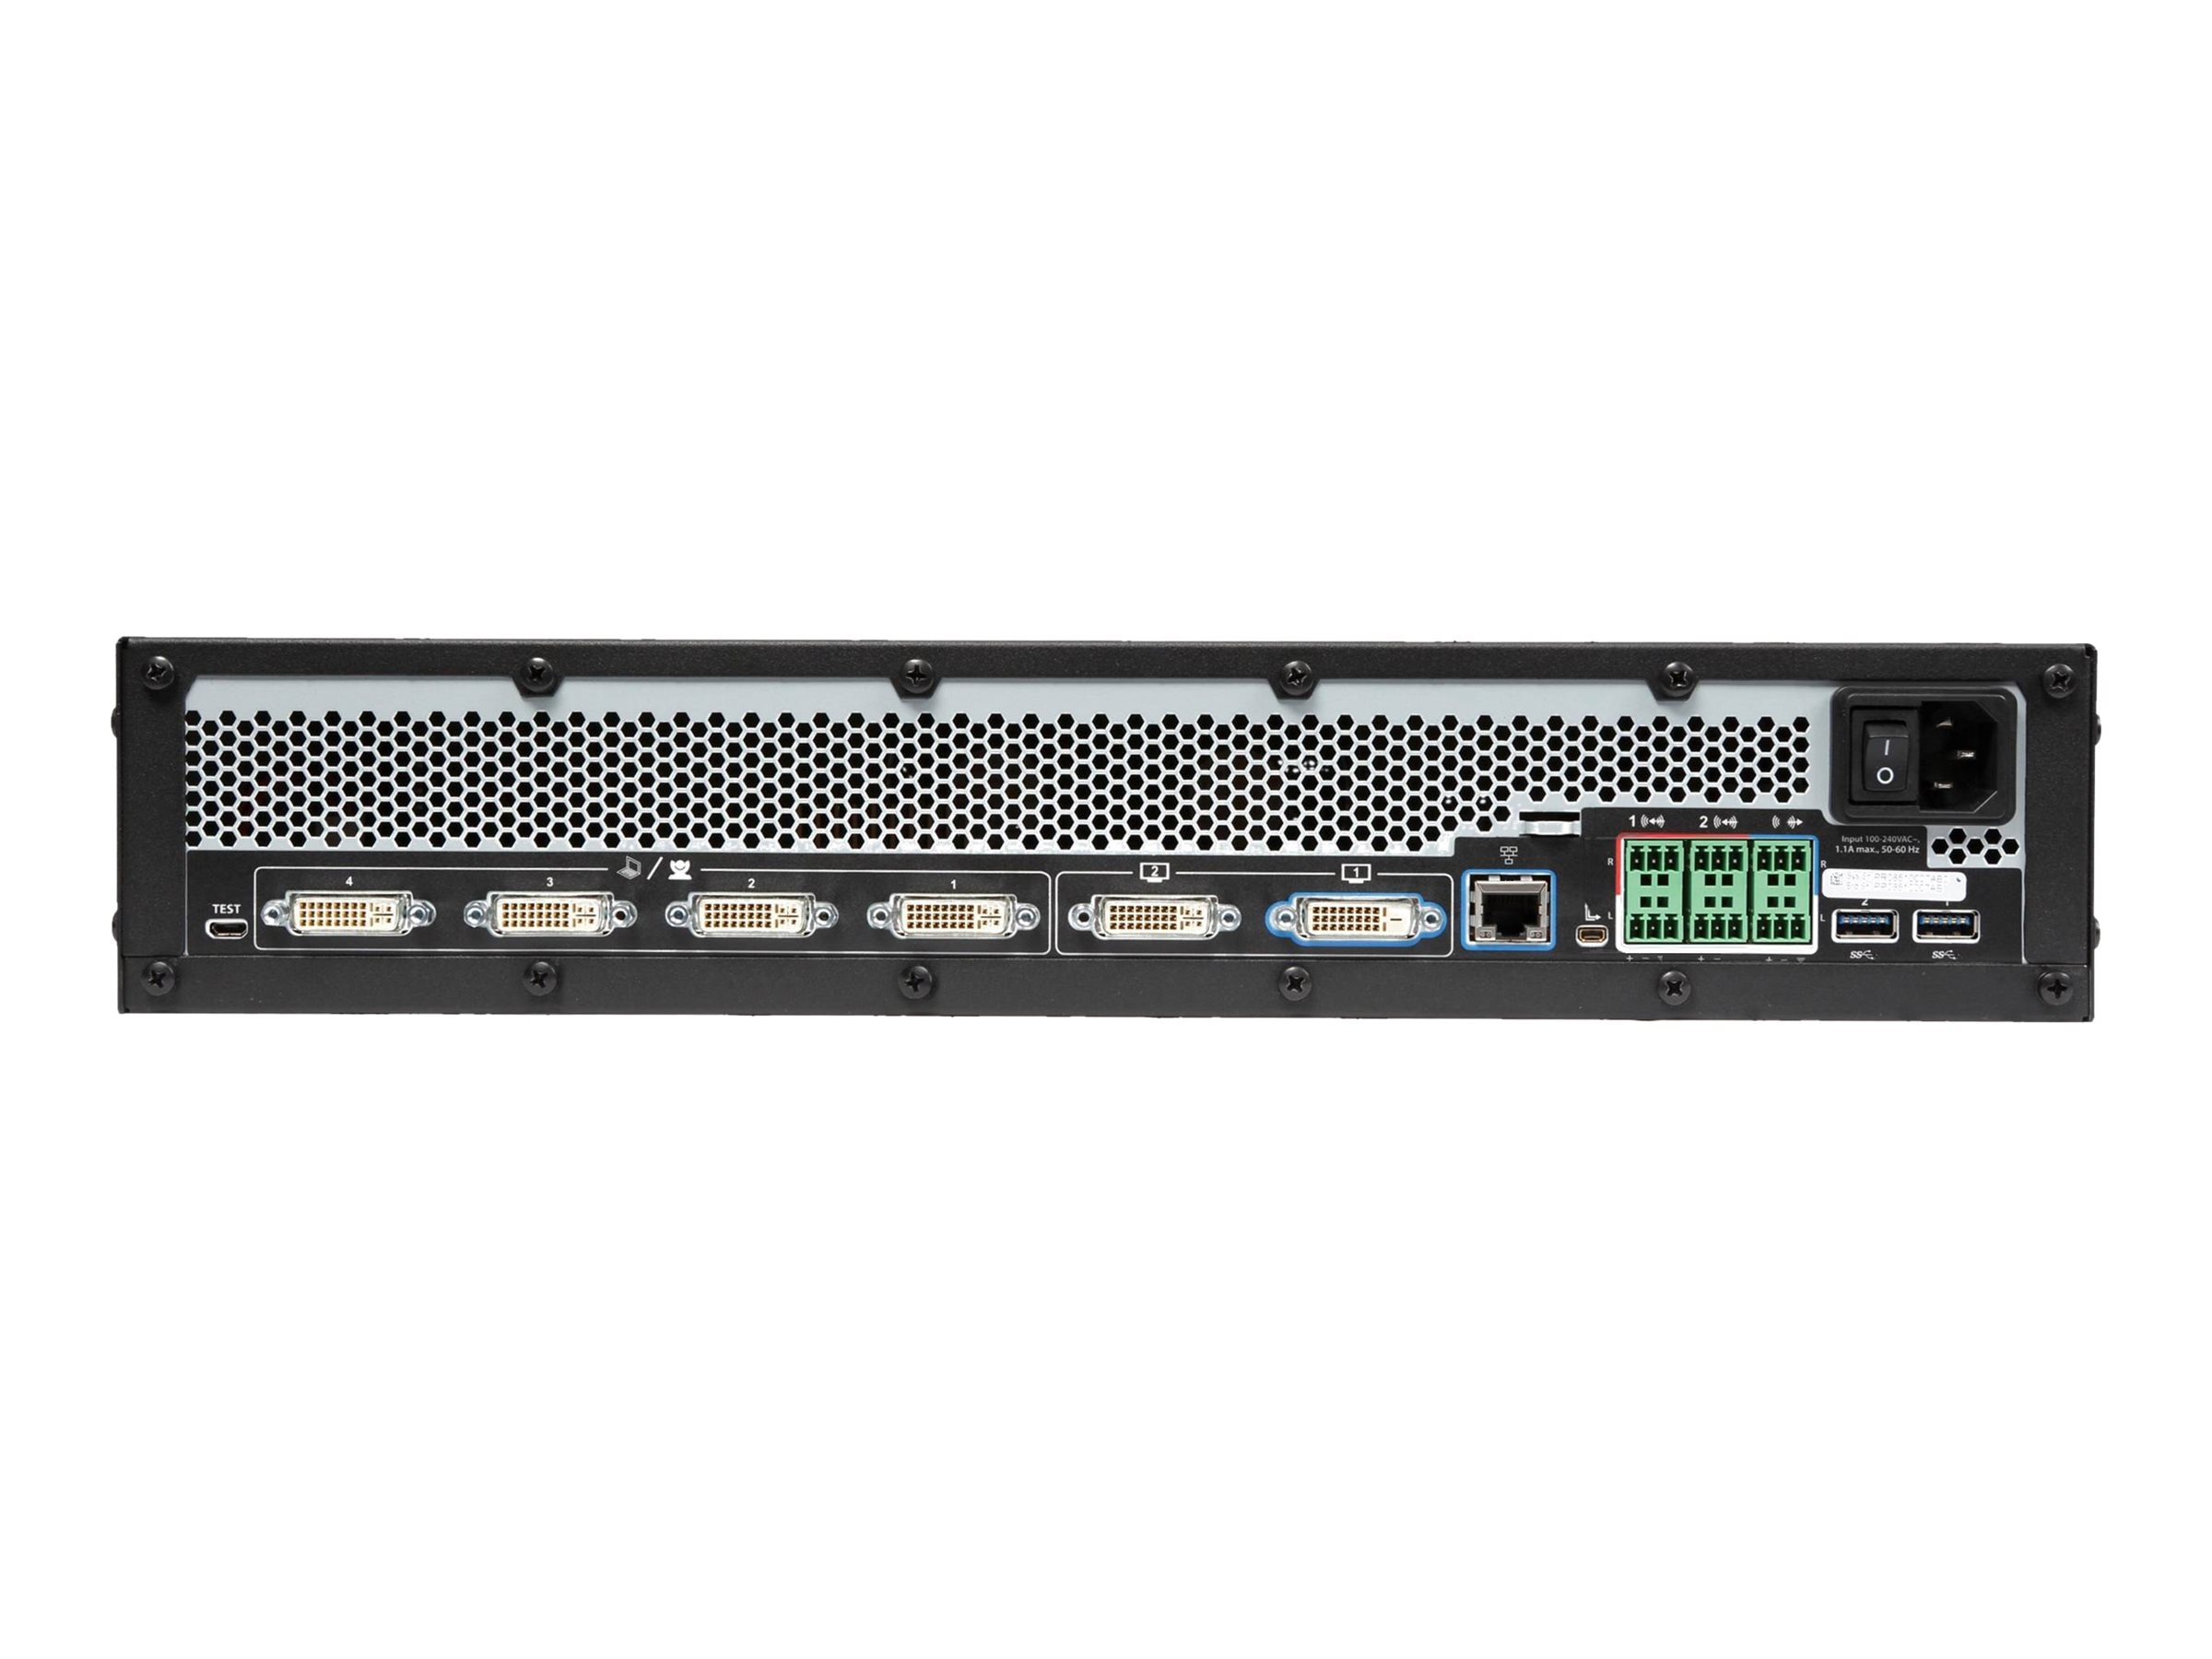 Lifesize LS 1 Year Service Plan, 1000-2100-1172, 17836390, Audio/Video Conference Hardware